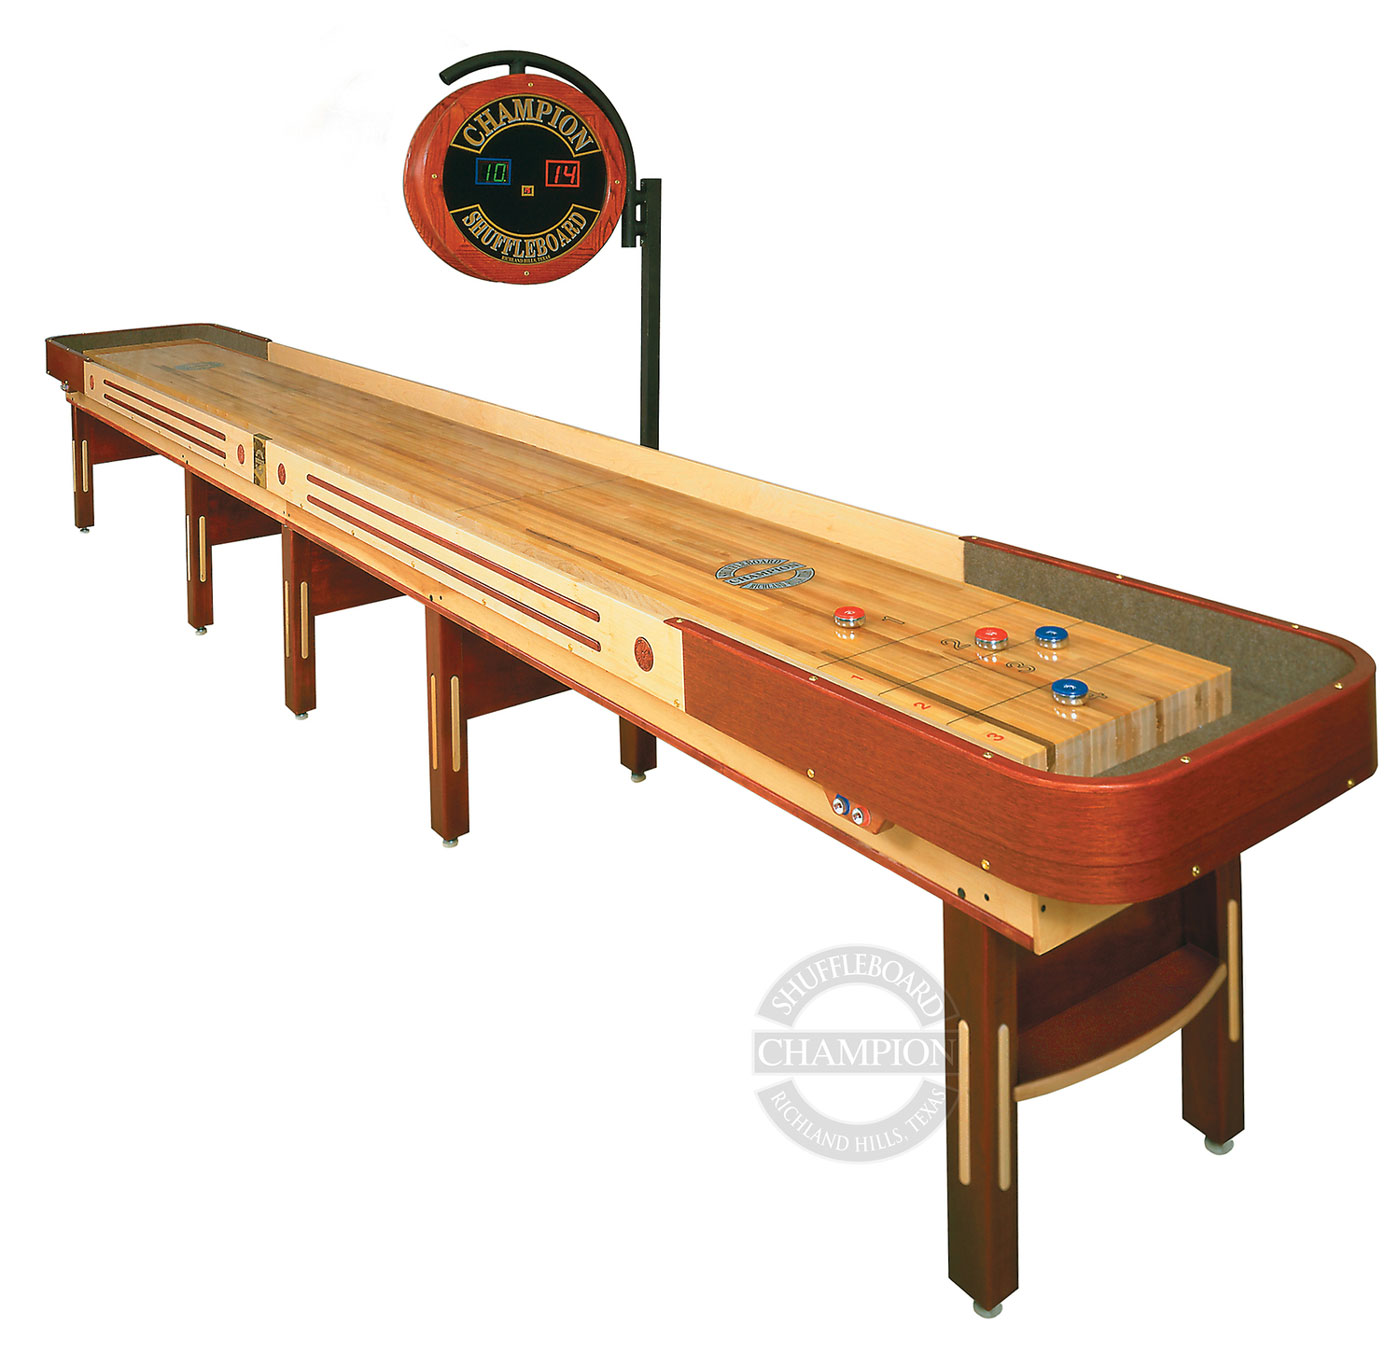 22 Grand Champion Limited Edition Shuffleboard Table